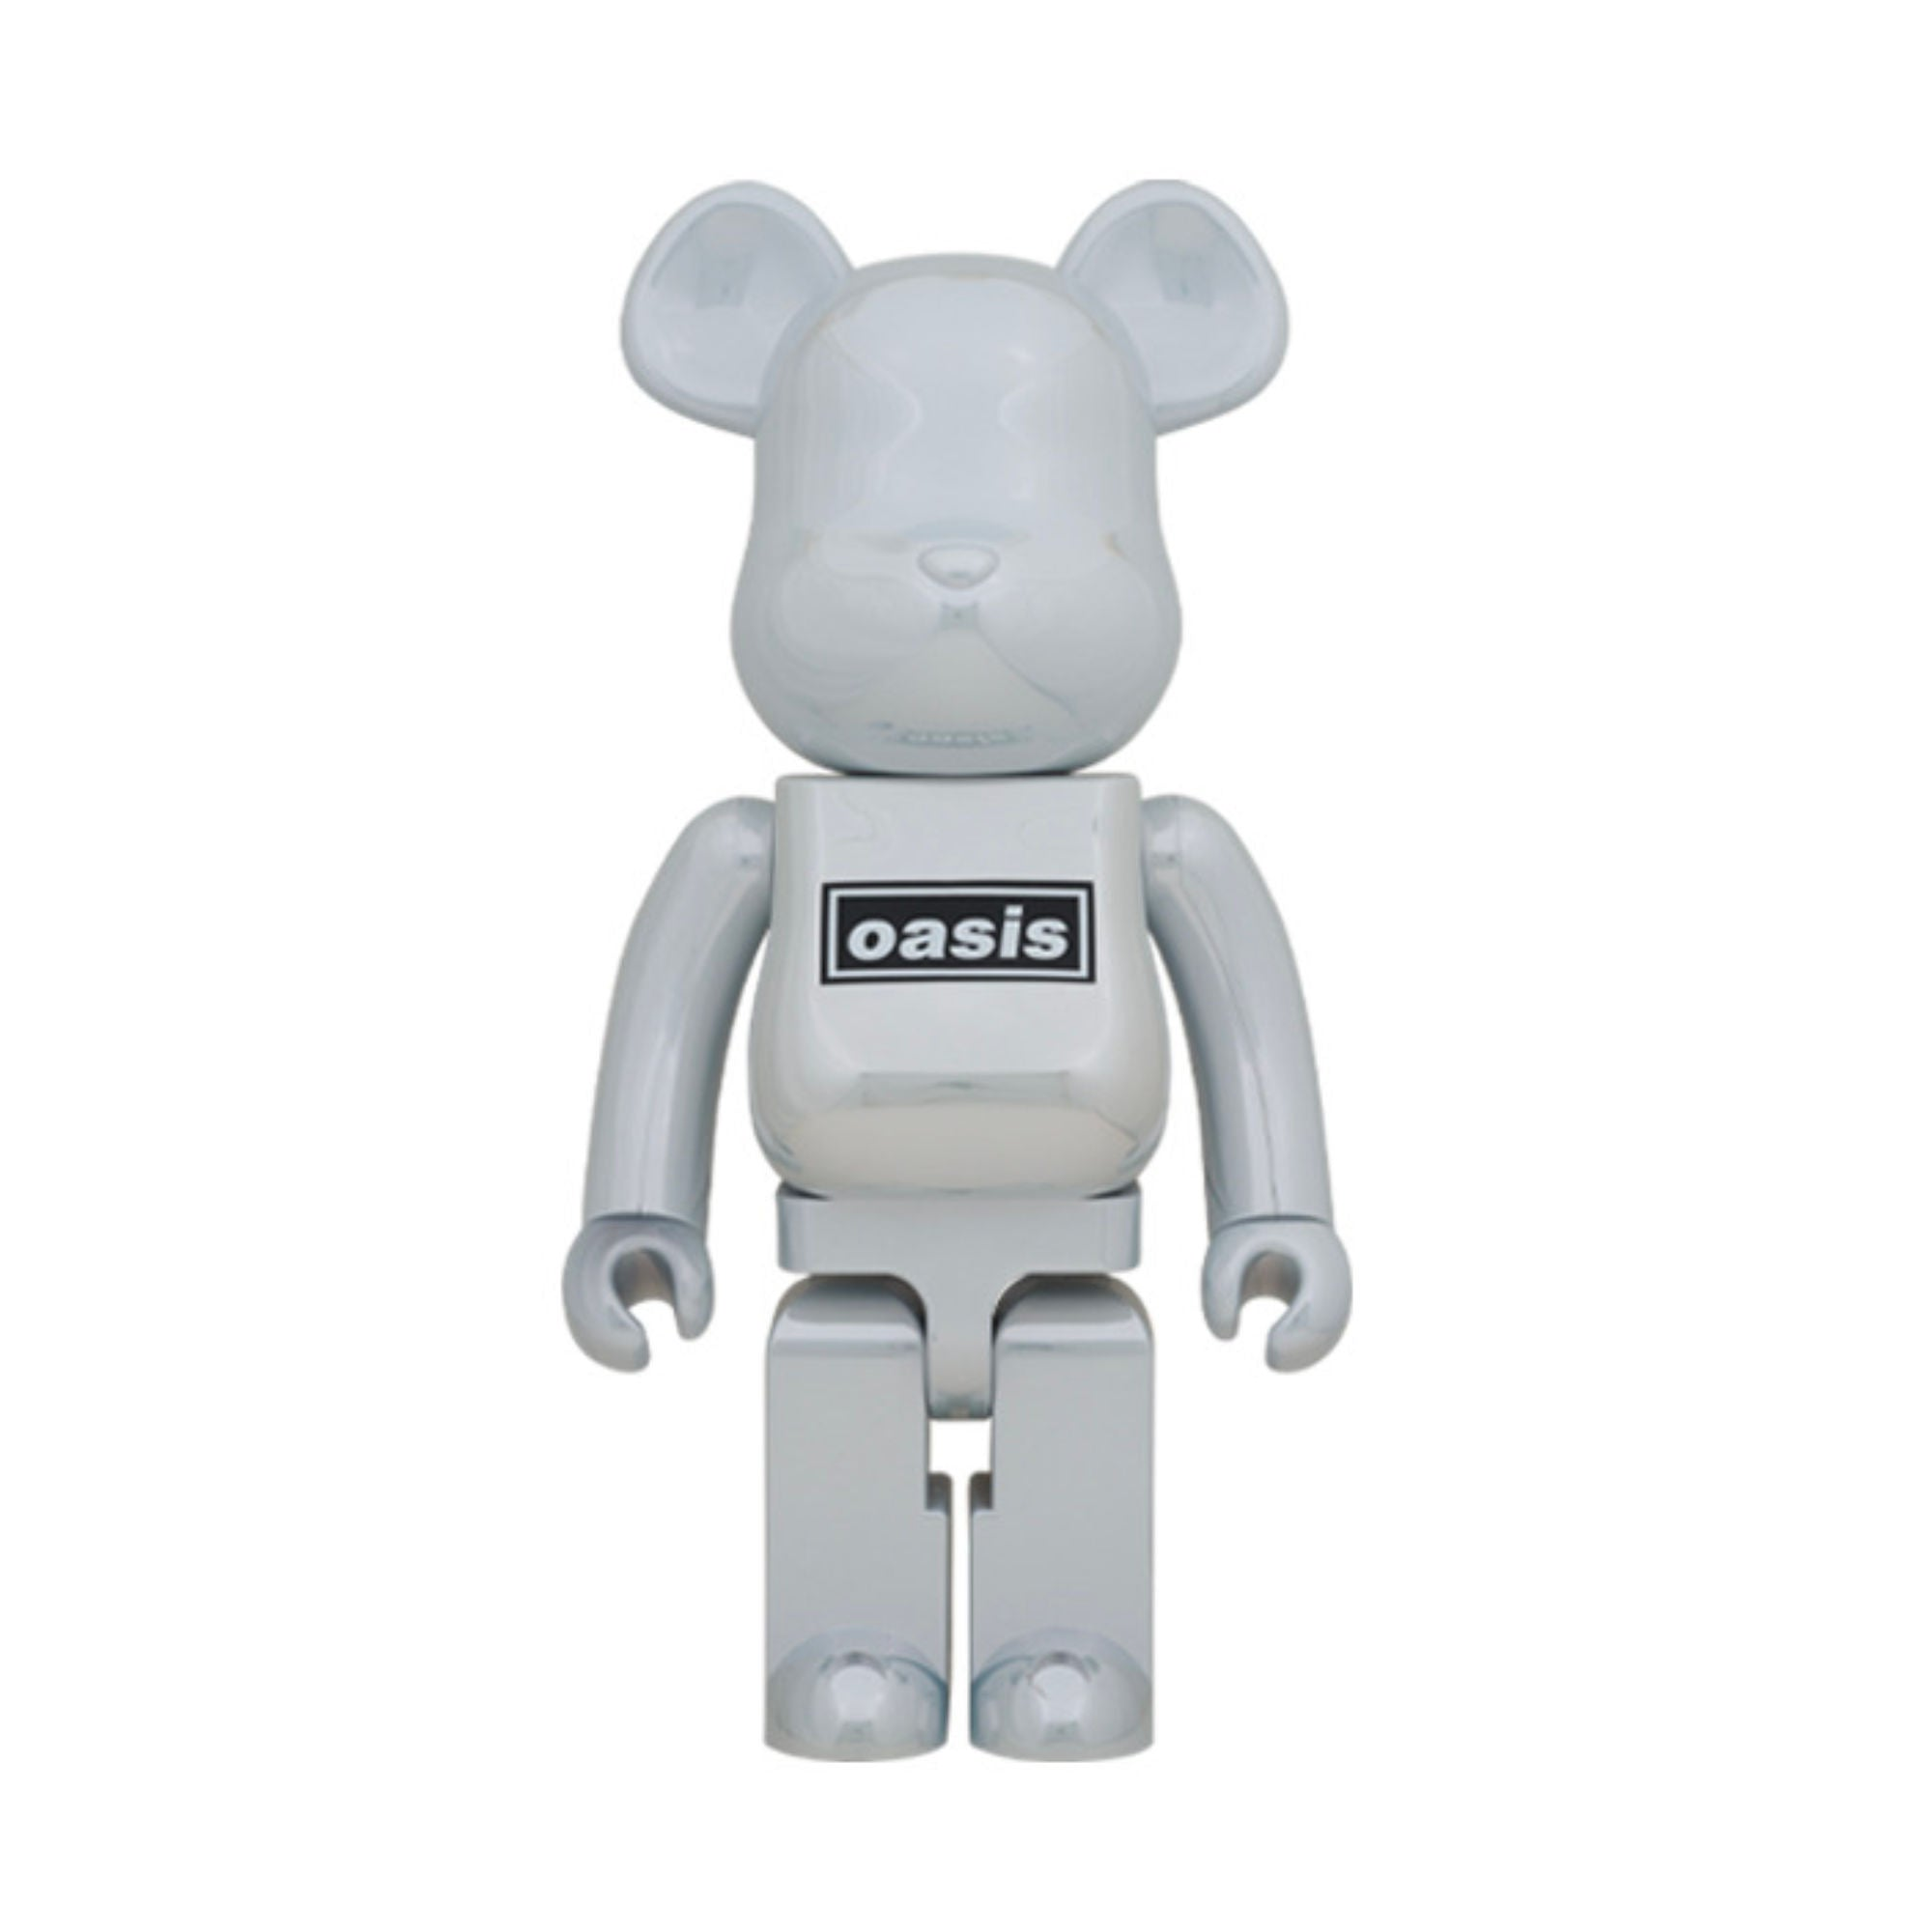 BE@RBRICK Oasis White Chrome 1000% (To be shipped in late Jan 2021)